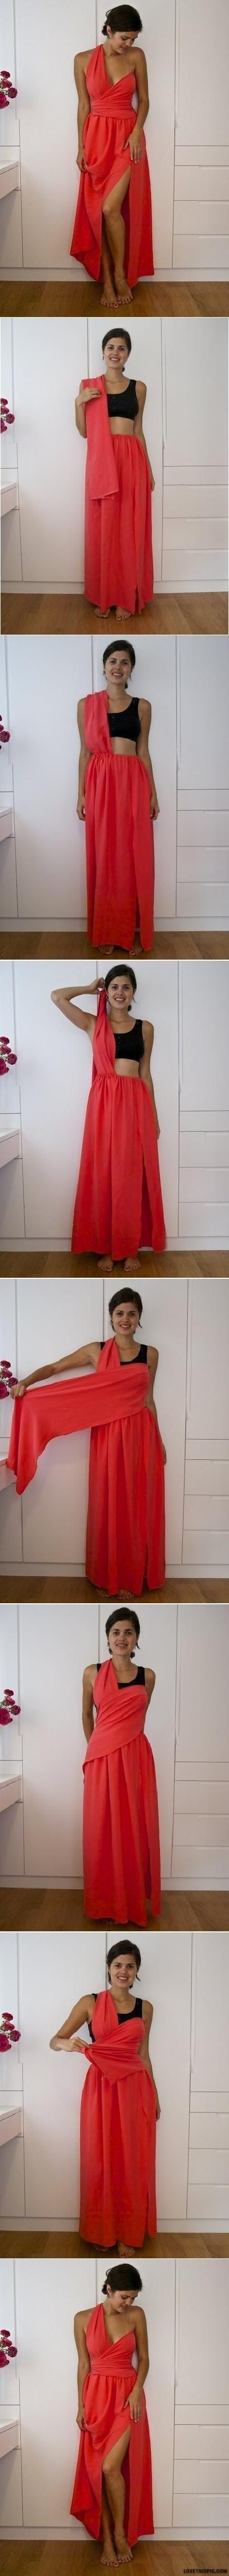 DIY No Sew Dress Pictures, Photos, and Images for Facebook, Tumblr, Pinterest, and Twitter